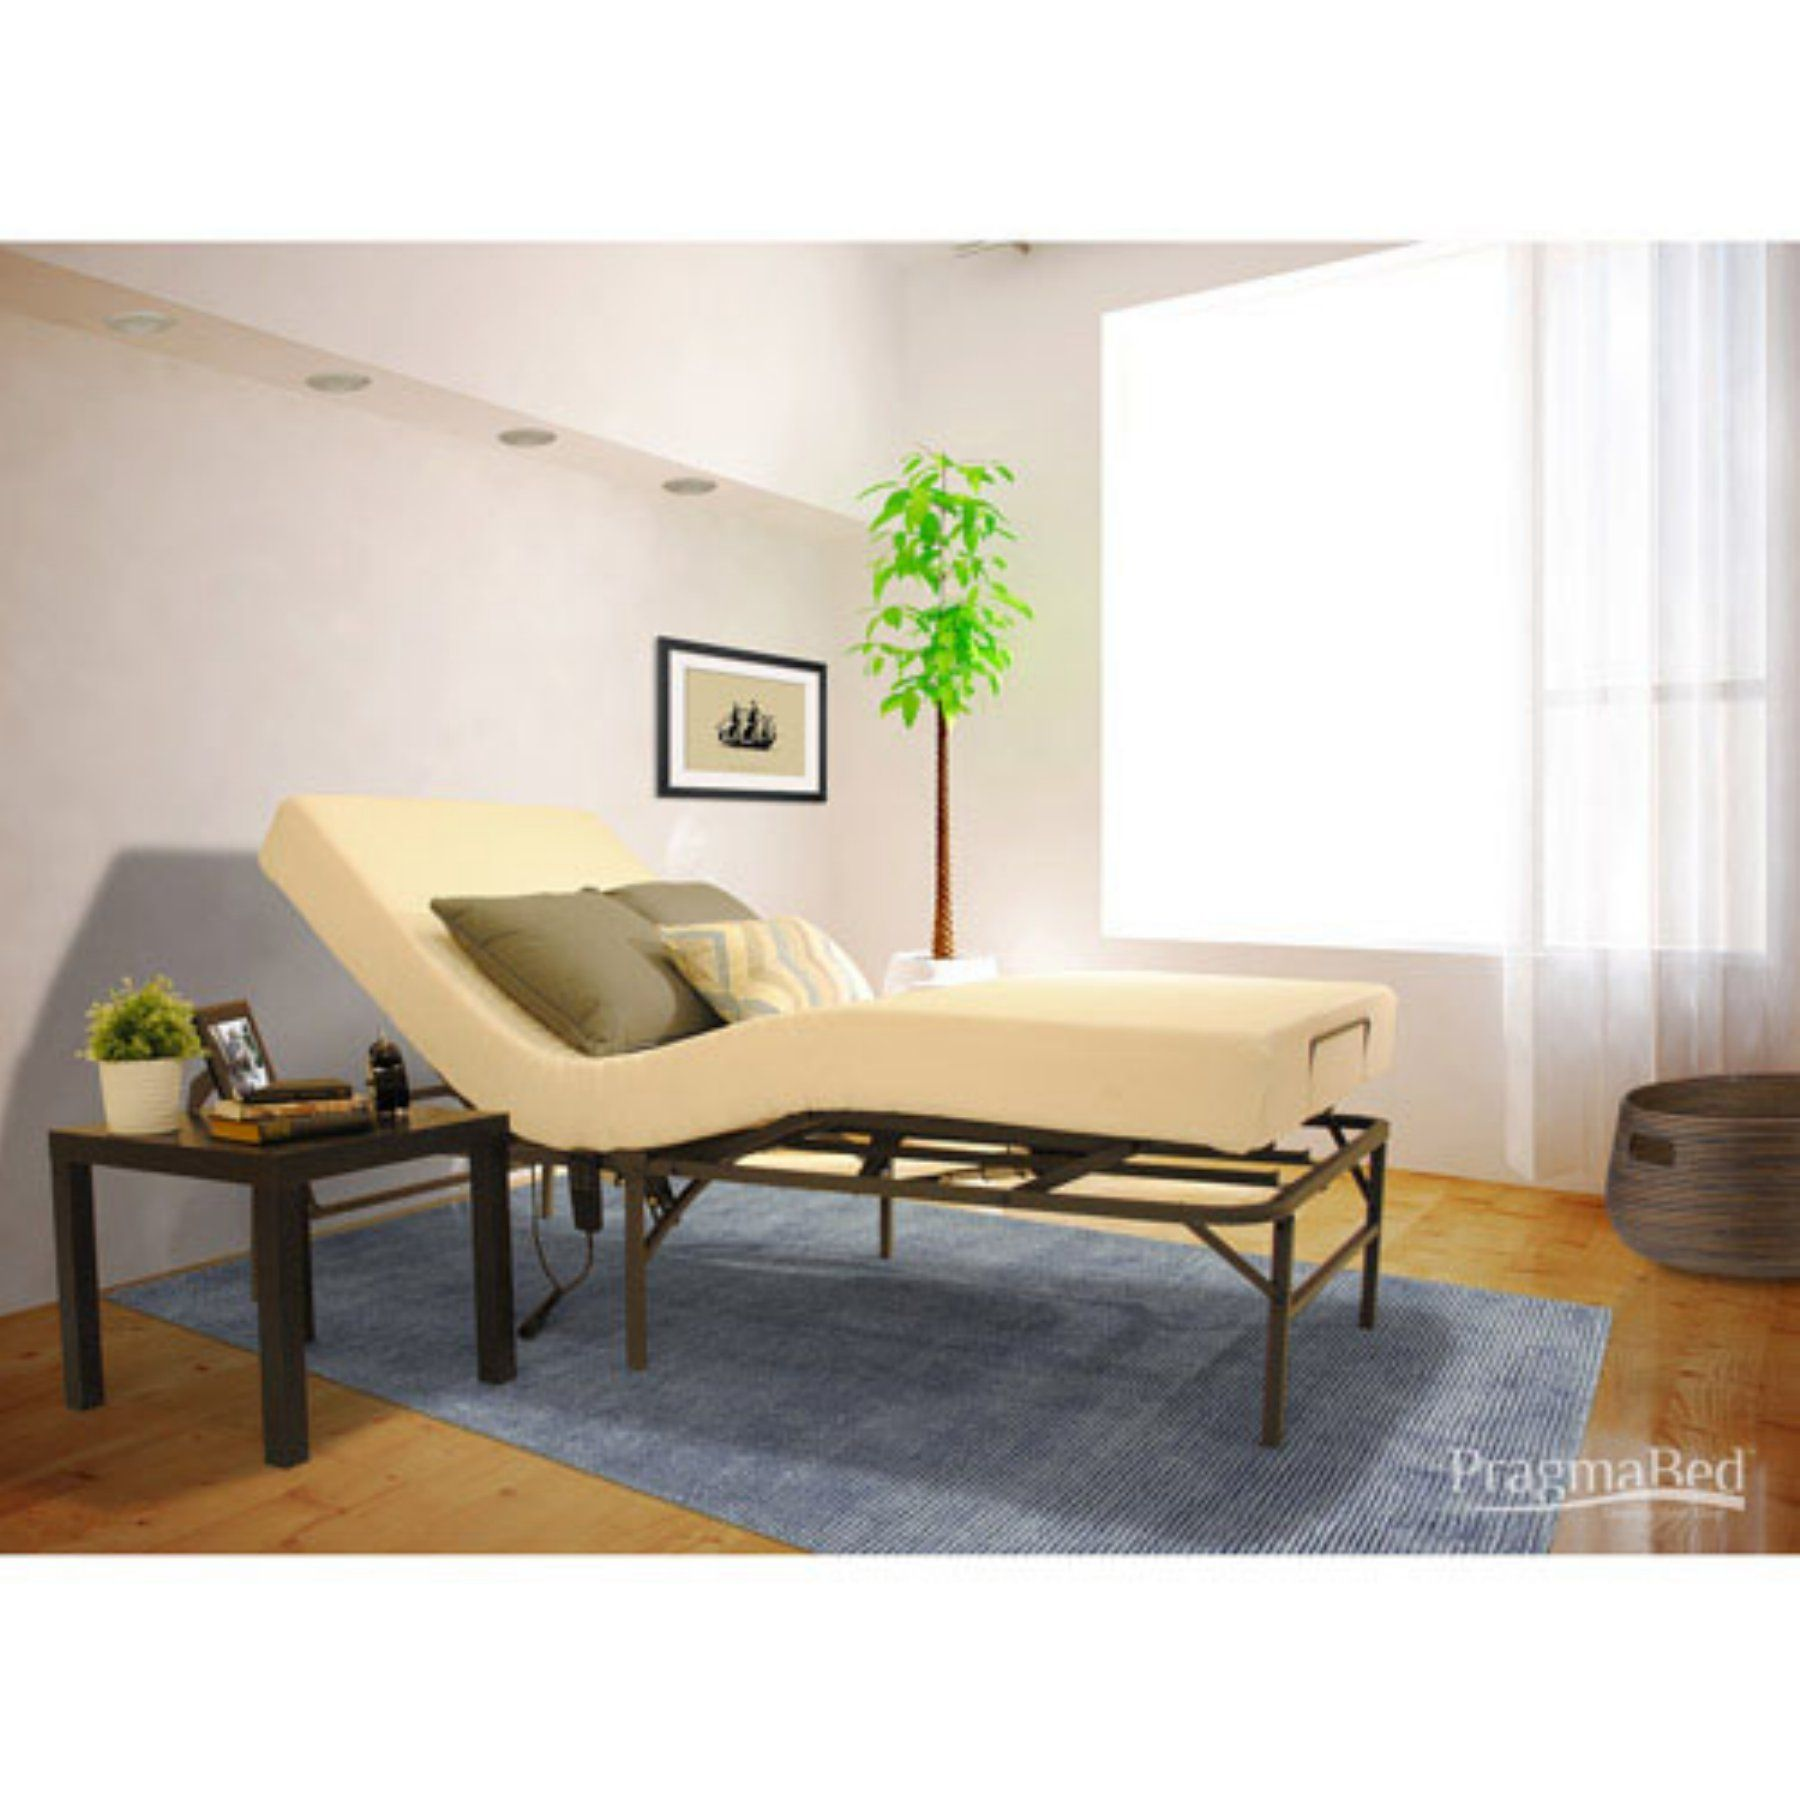 Pragma Bed Everyday Bed In A Box Pragmatic Adjustable Bed Frame